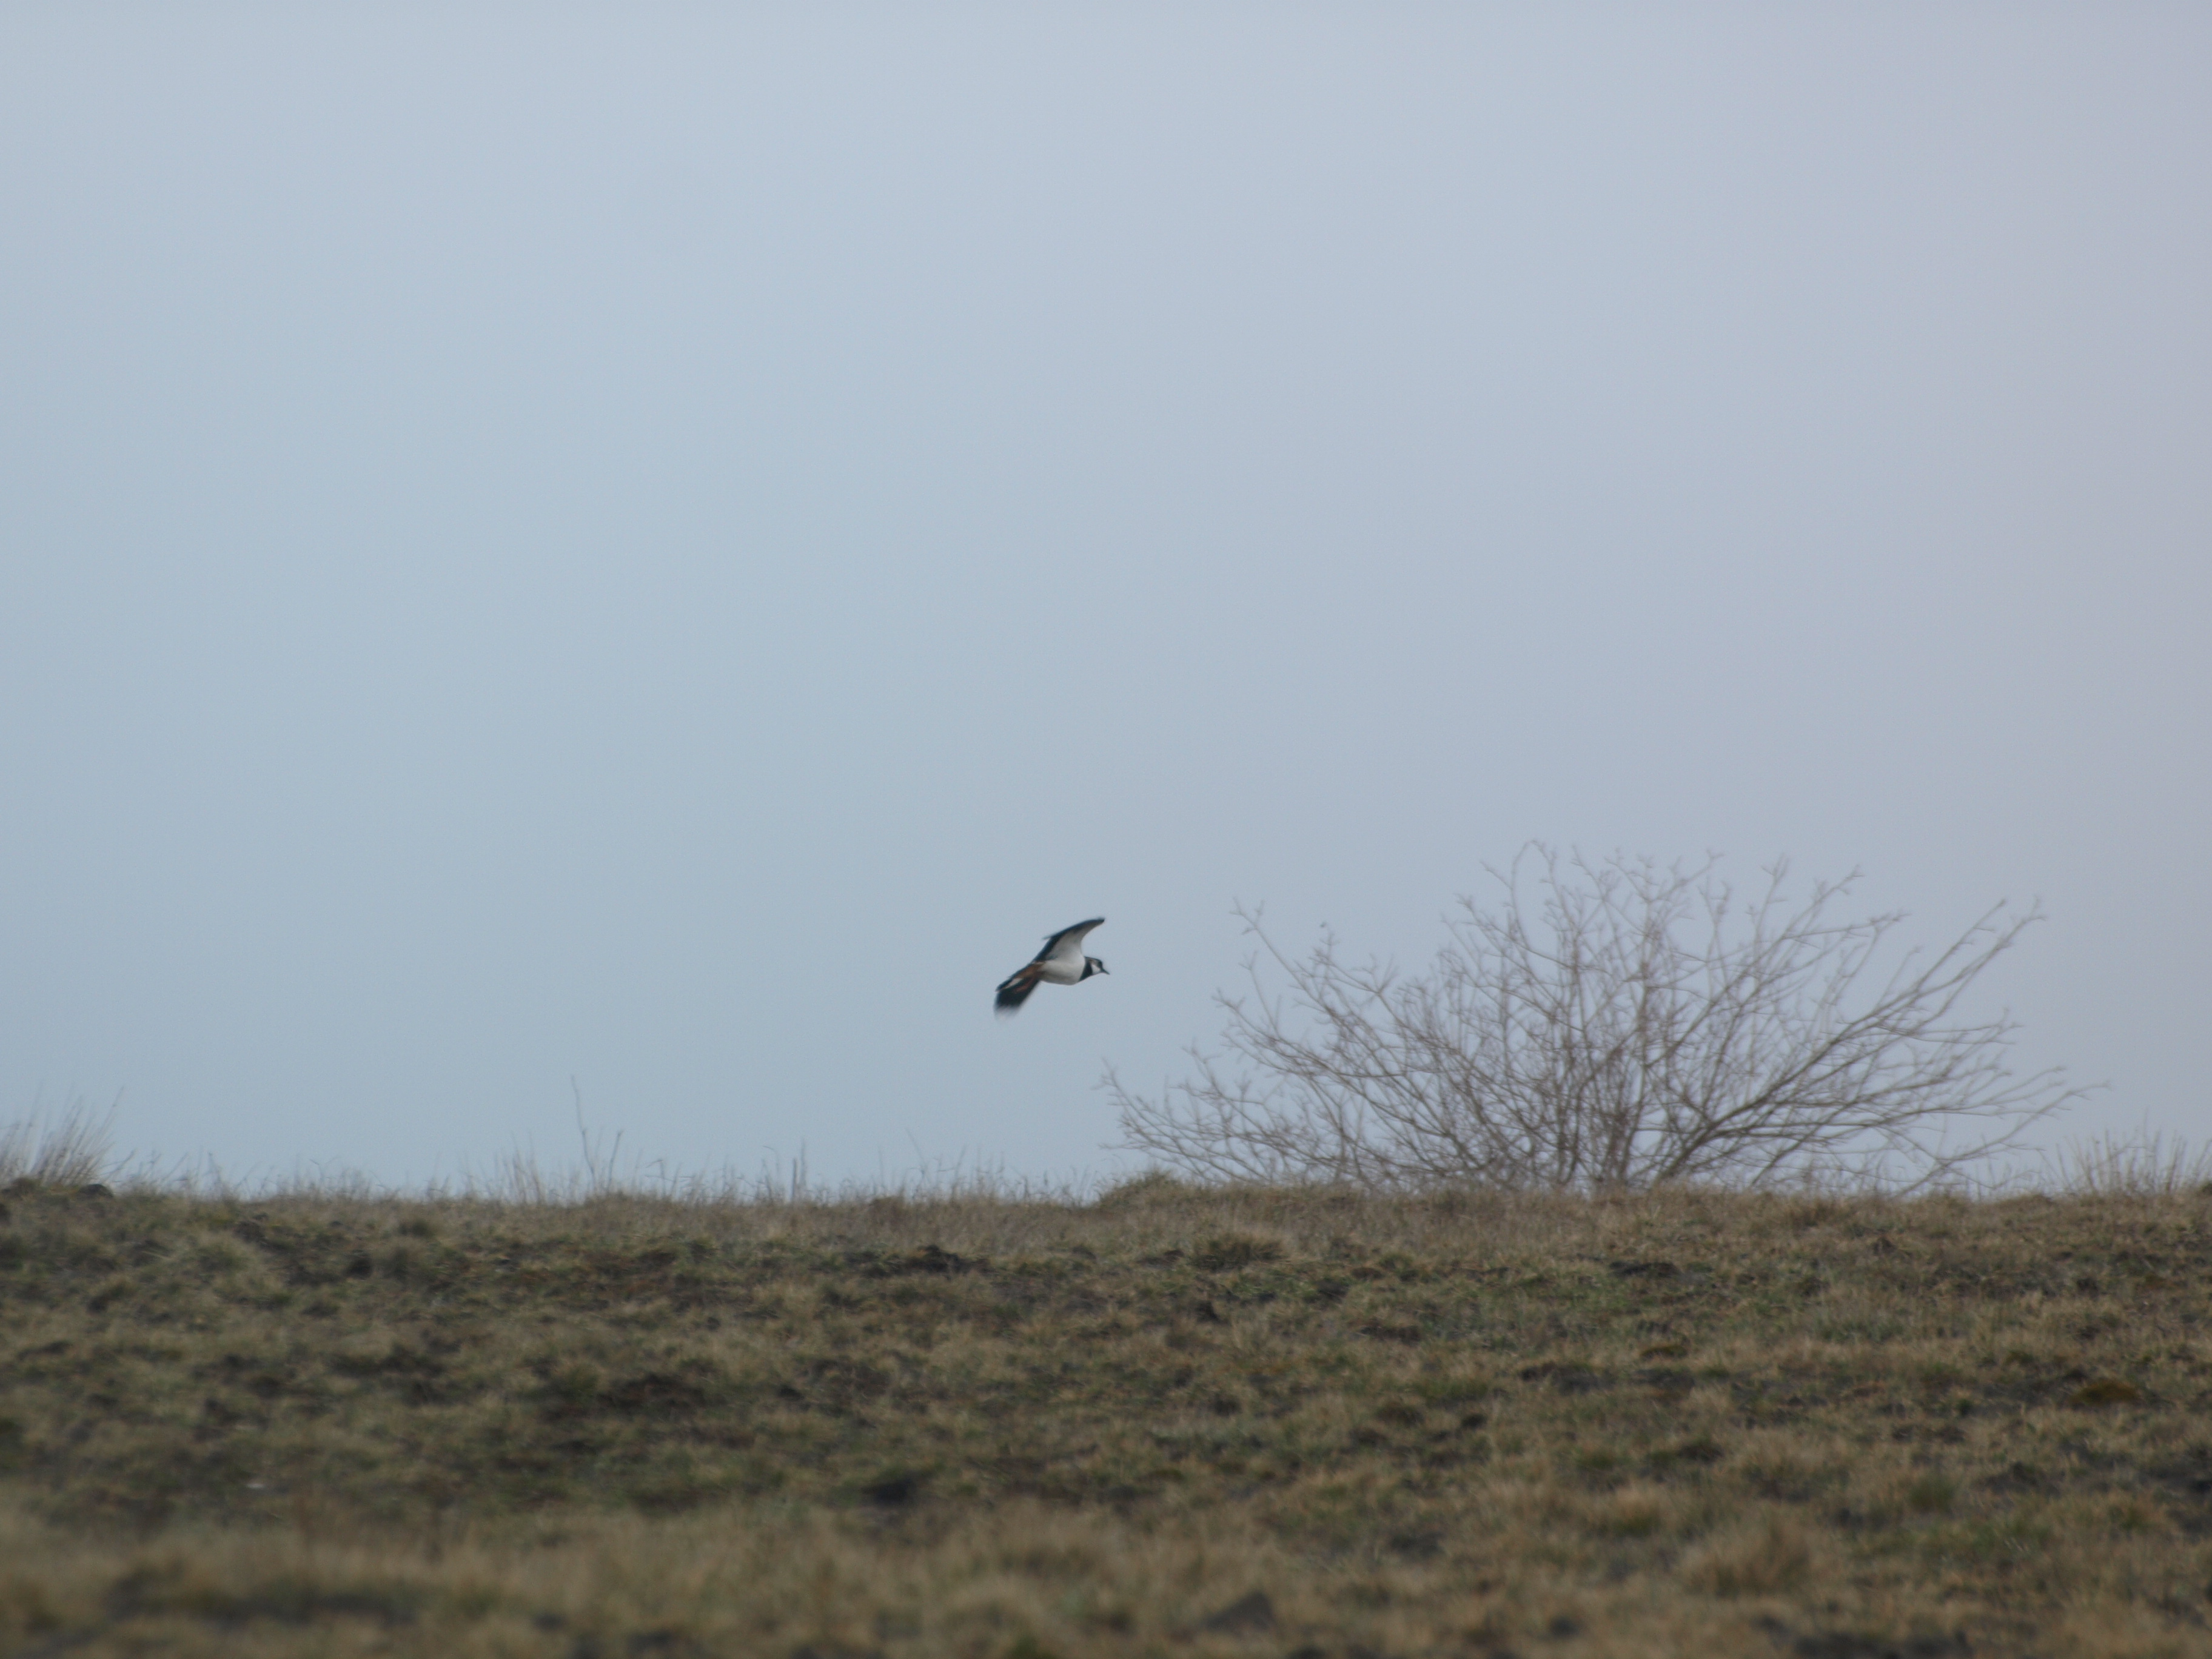 One of the Lapwings takes to the air.